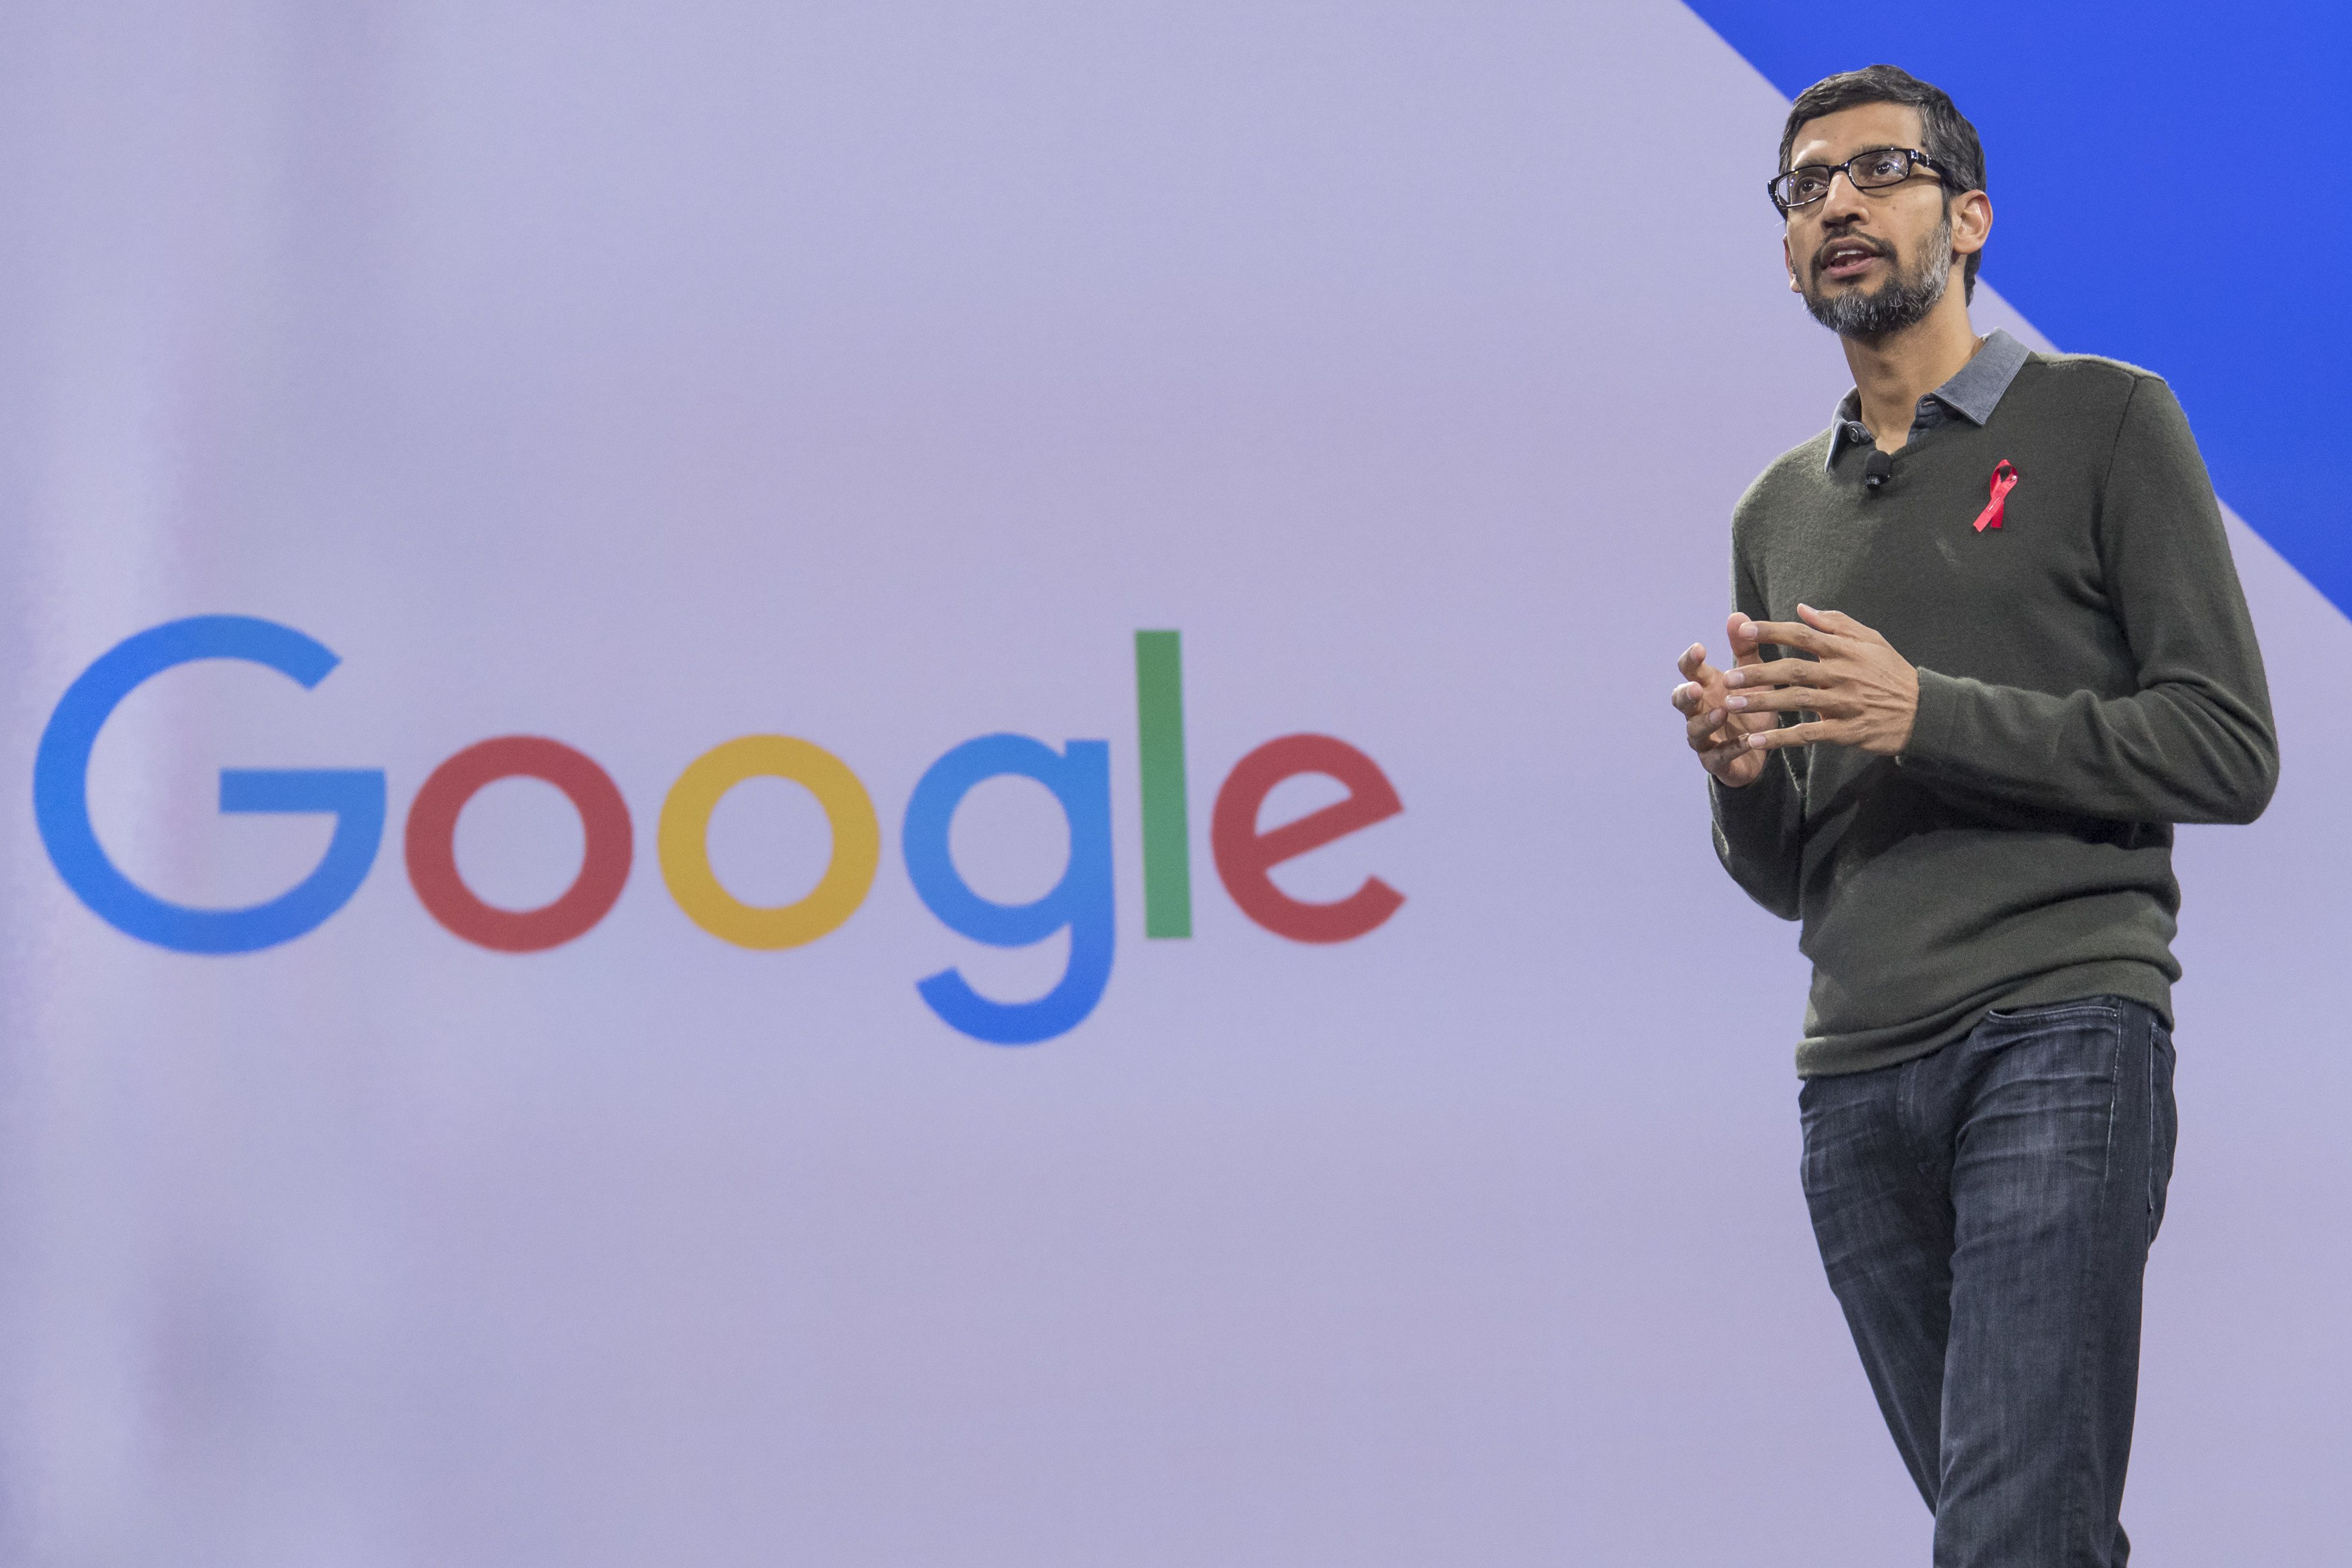 Google to set up a European tech hub to deal with data privacy